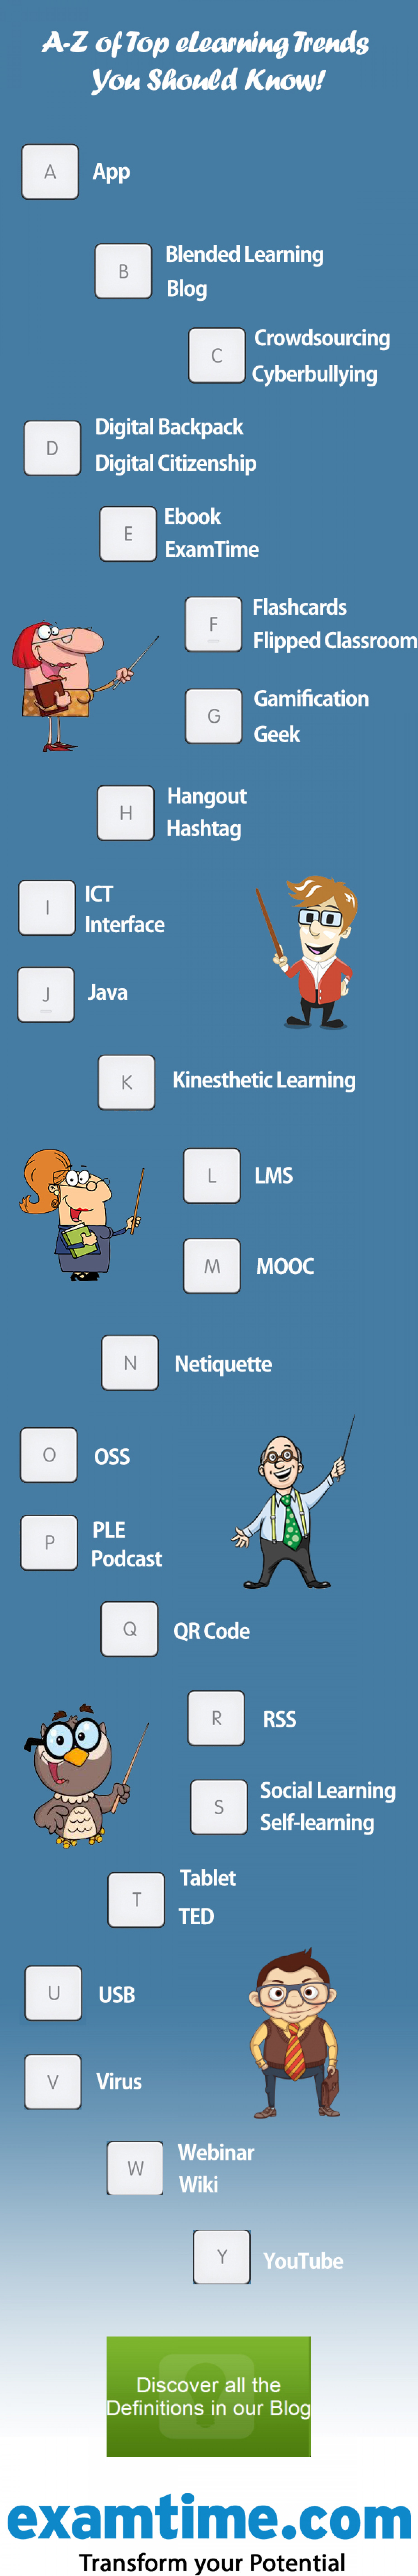 A-Z of eLearning Trends You Should Know! Infographic